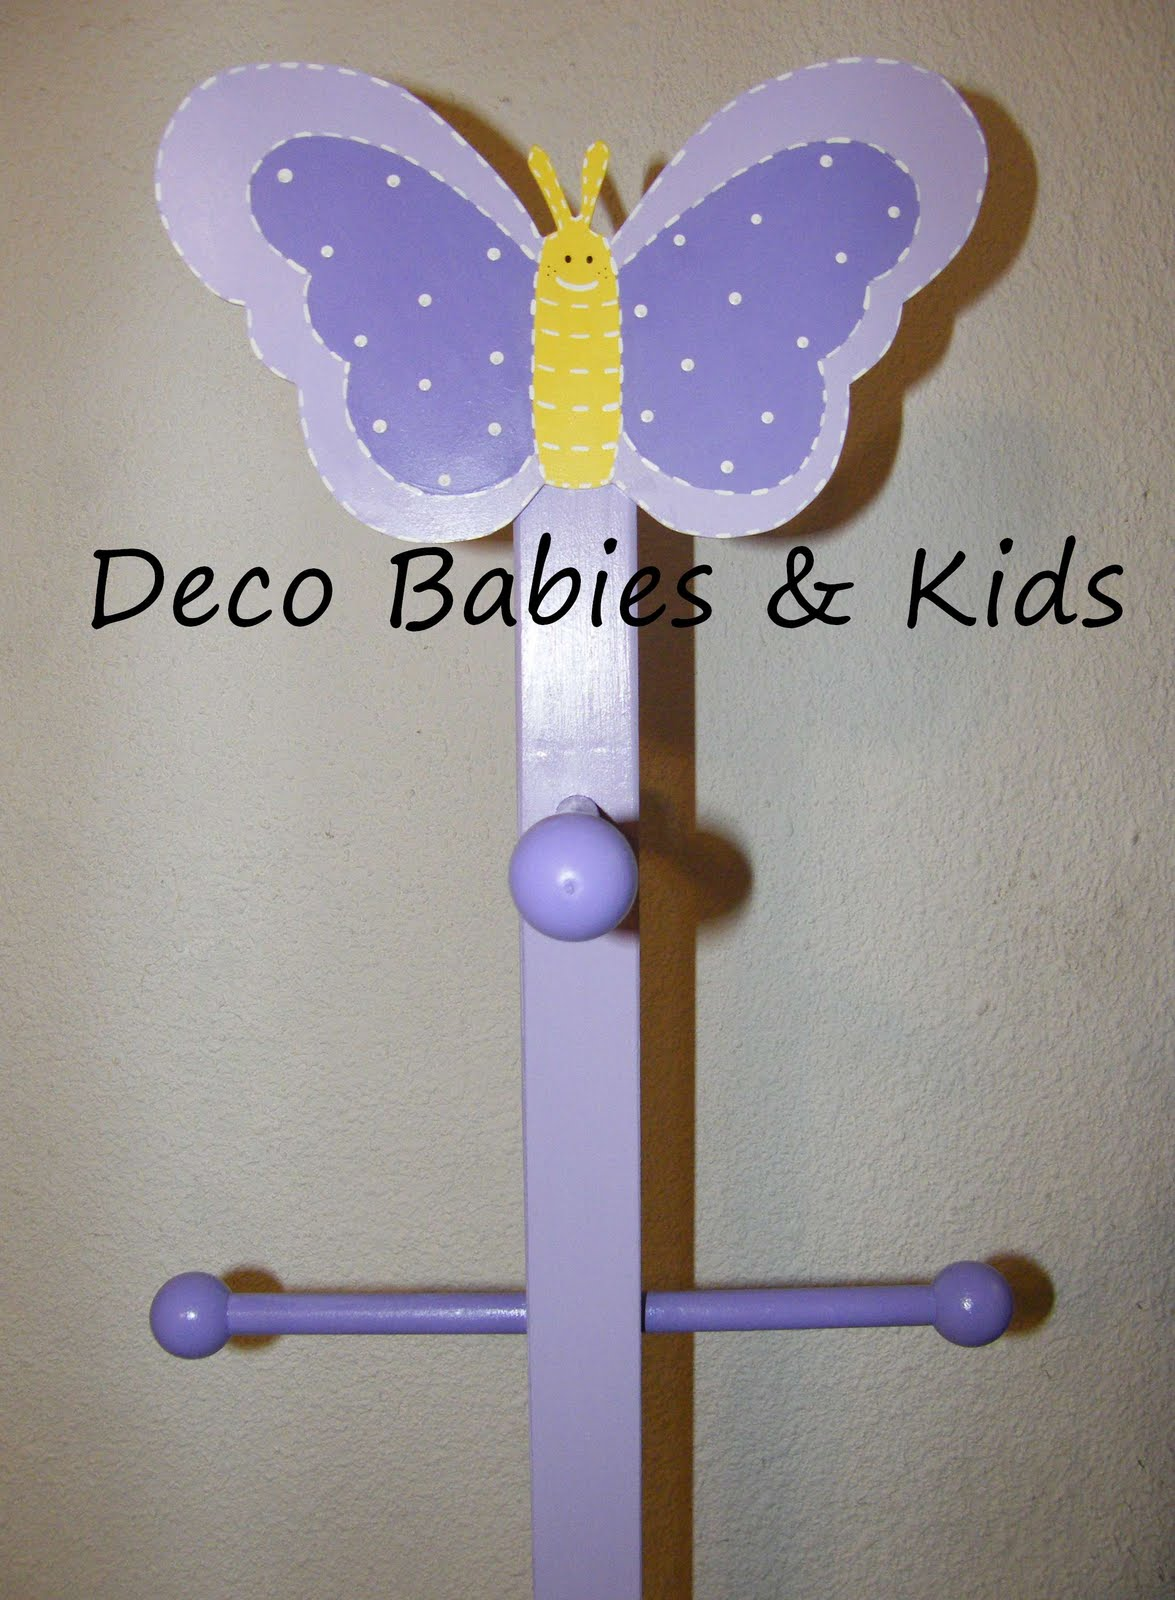 Deco babies kids perchero de pie mariposa - Perchero infantil de pie ...